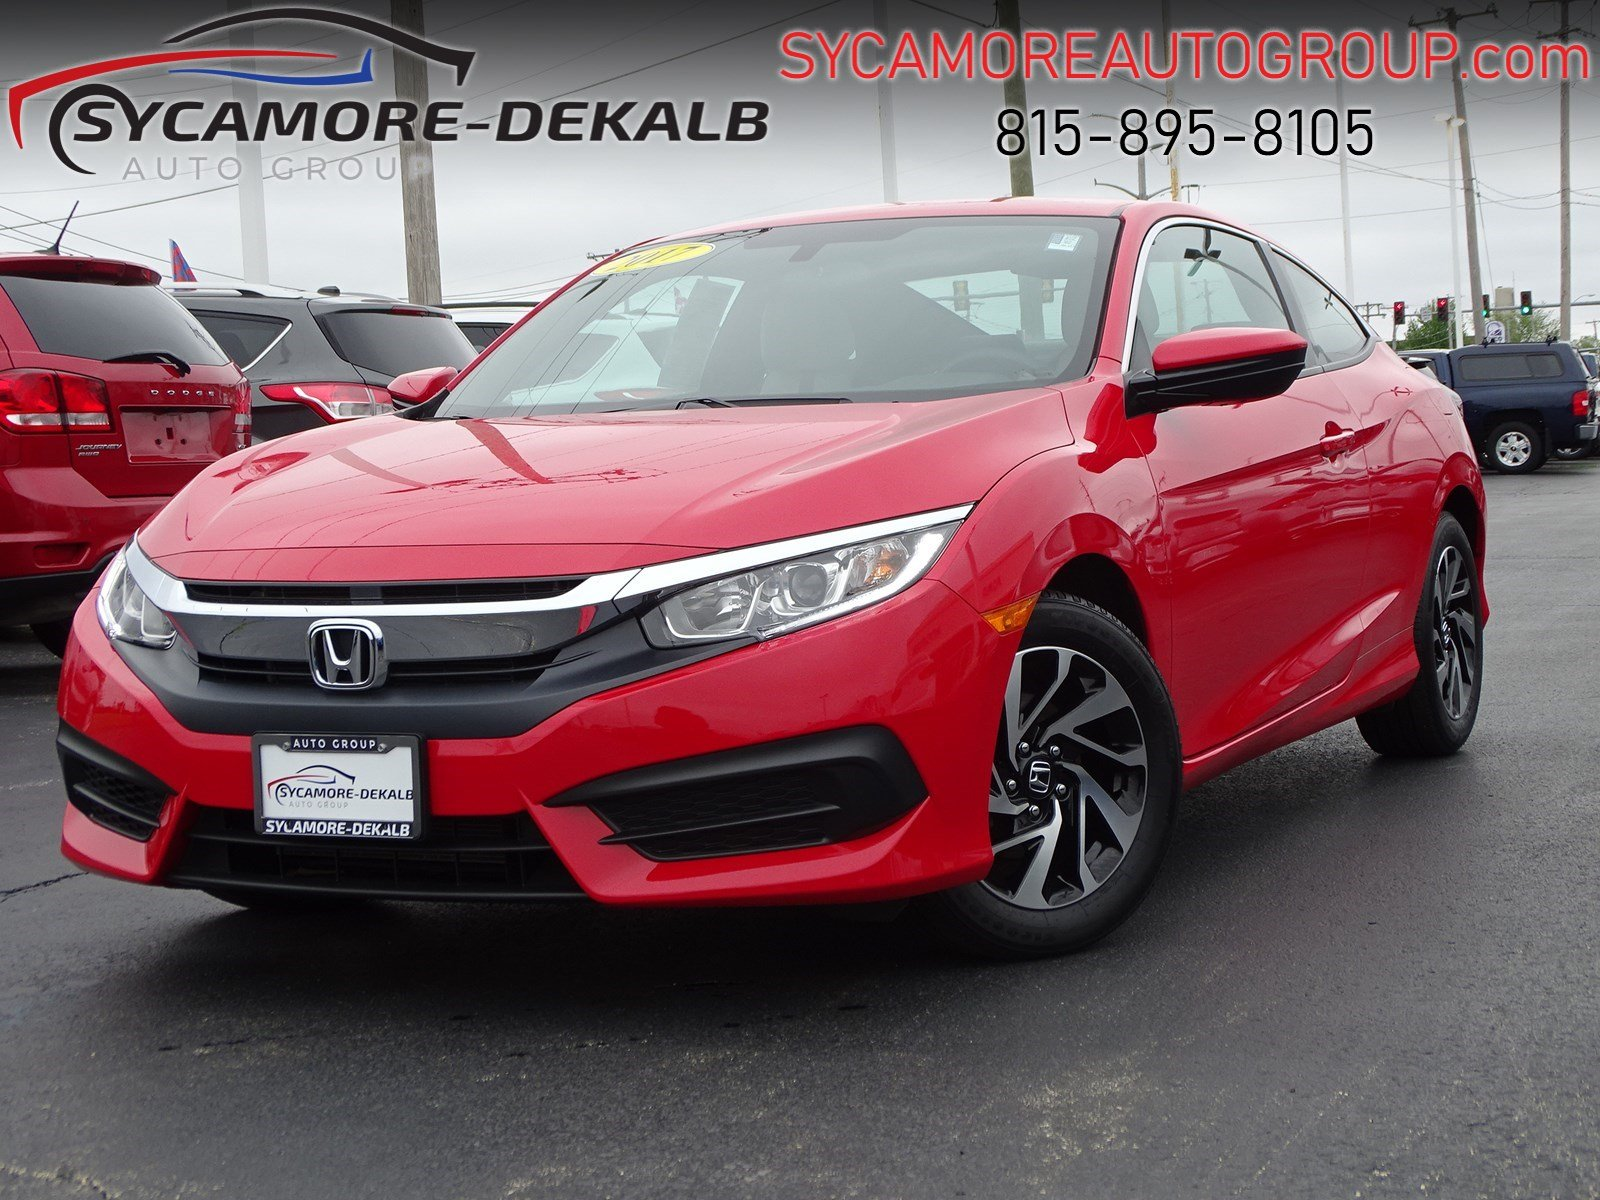 Pre-Owned 2017 Honda Civic Coupe LX FWD 2dr Car